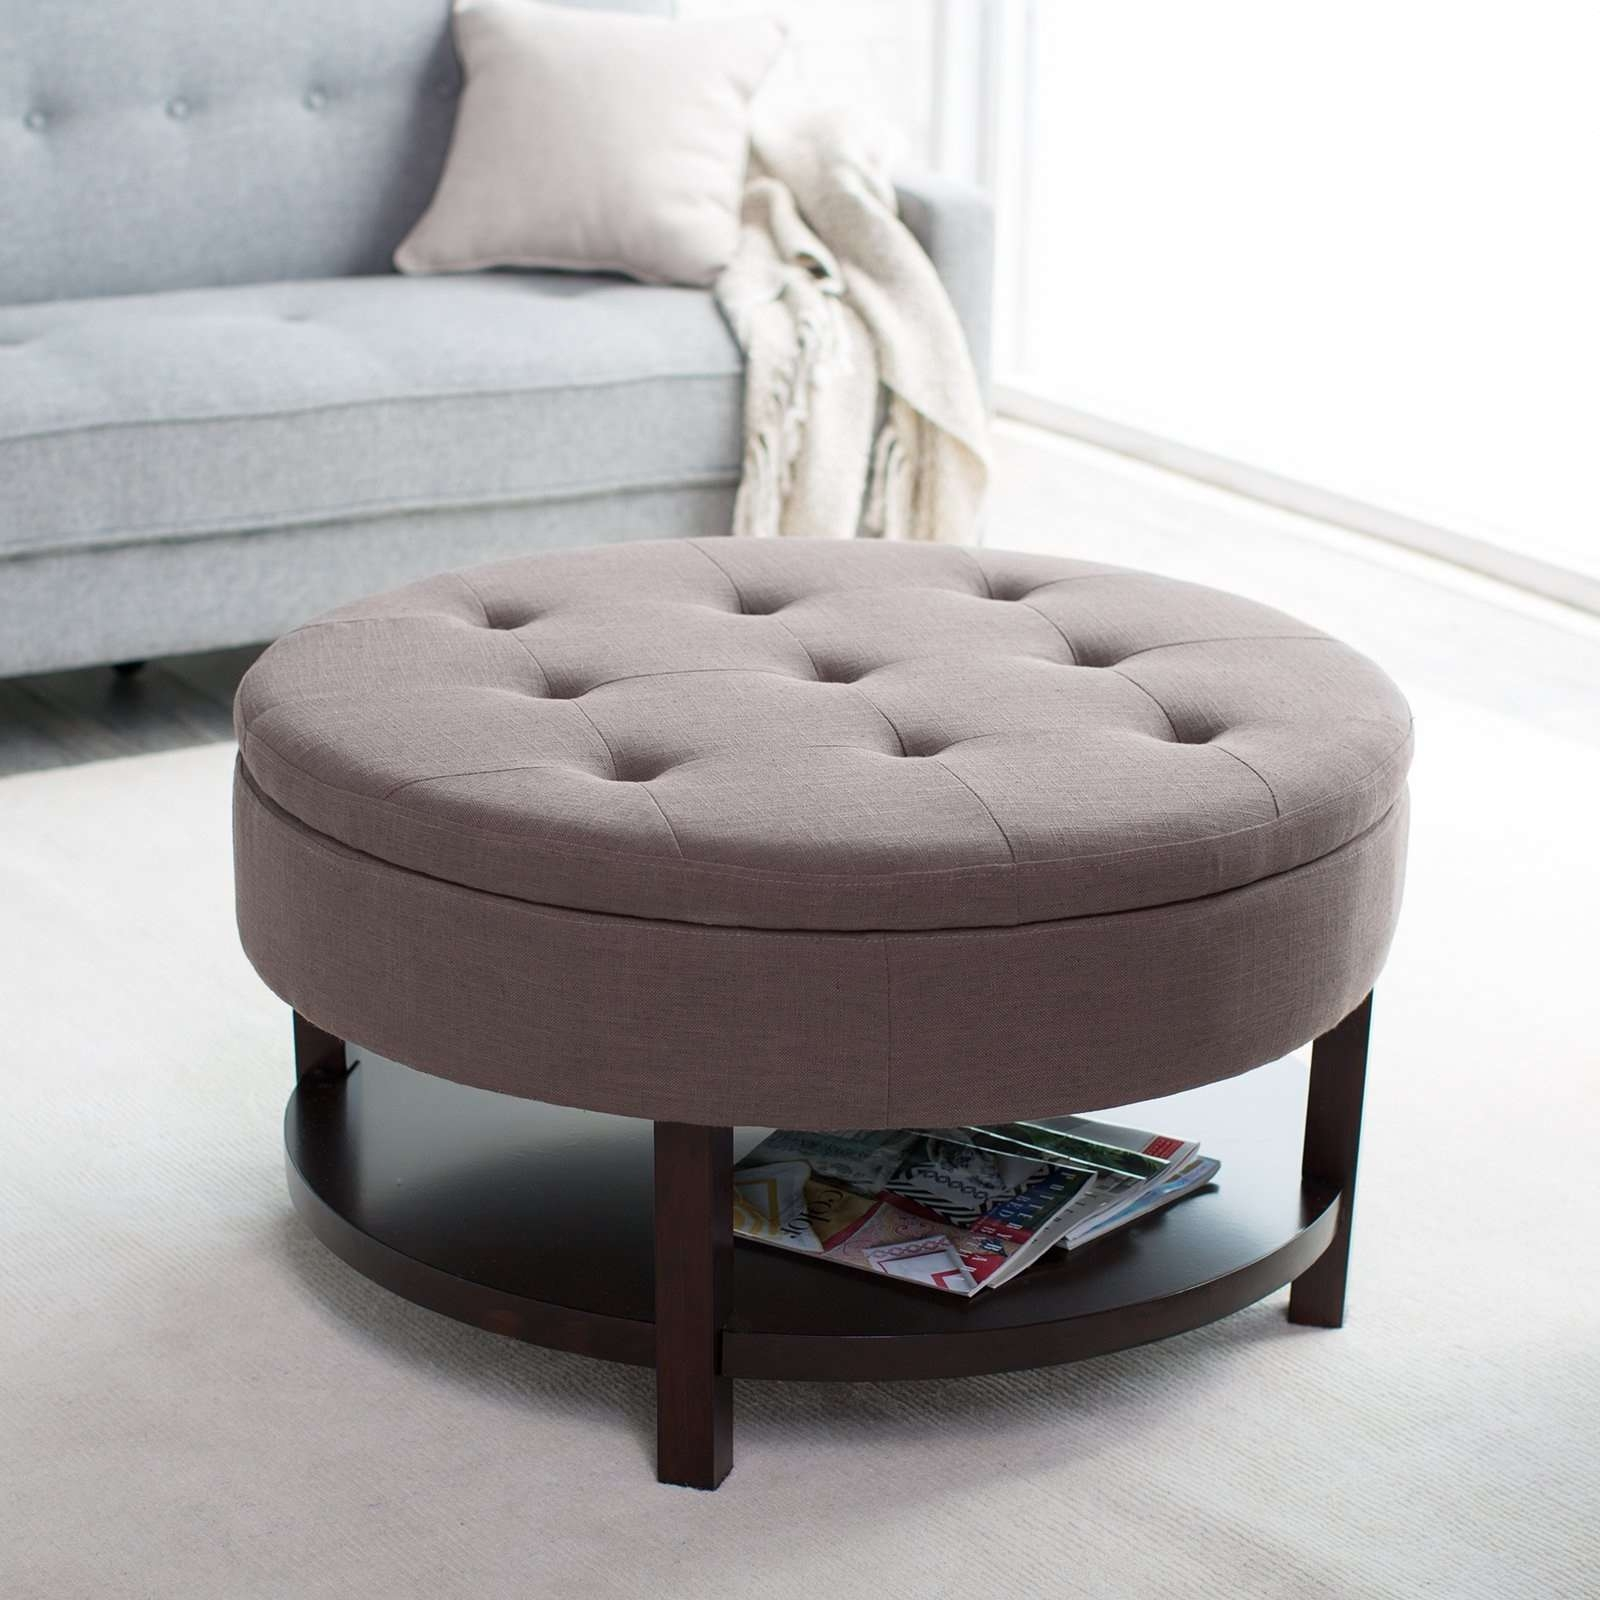 Famous Round Upholstered Coffee Tables In Large Round Storage Ottoman Coffee Table Leather Brown Color (View 11 of 20)